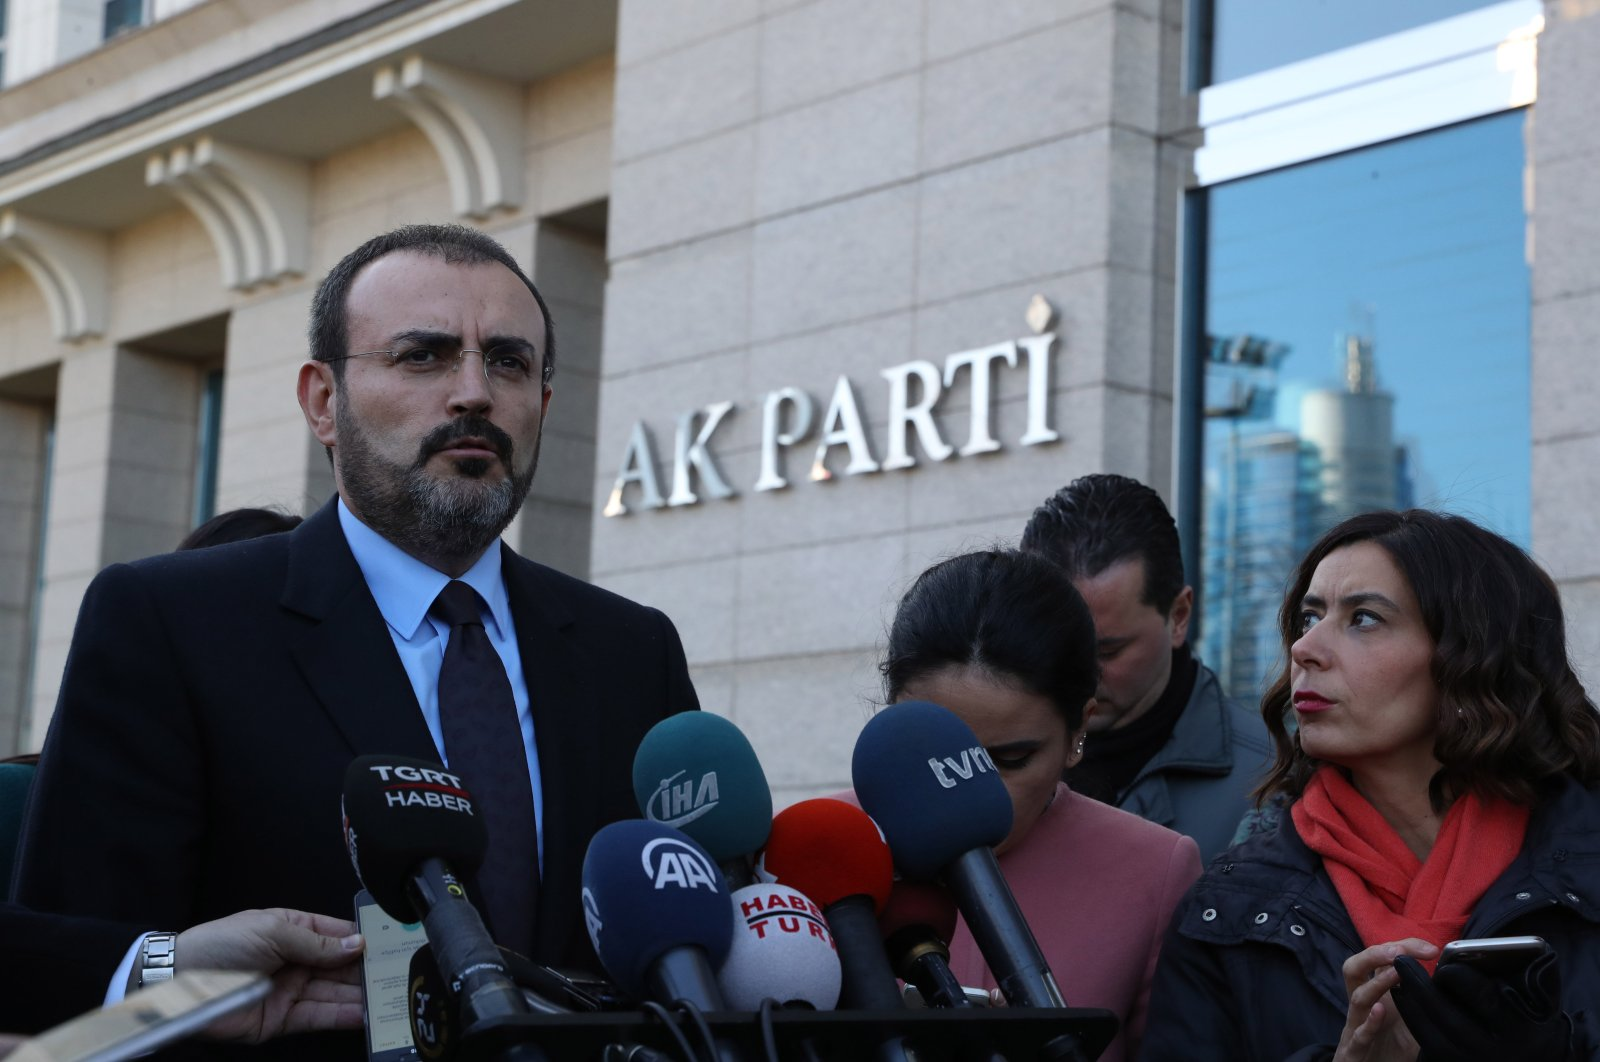 Justice and Development Party (AK Party) Deputy Chairman Mahir Ünal speaks to reporters in front of the AK Party headquarters following a meeting, in this undated file photo, Ankara, Turkey. (Sabah Photo)